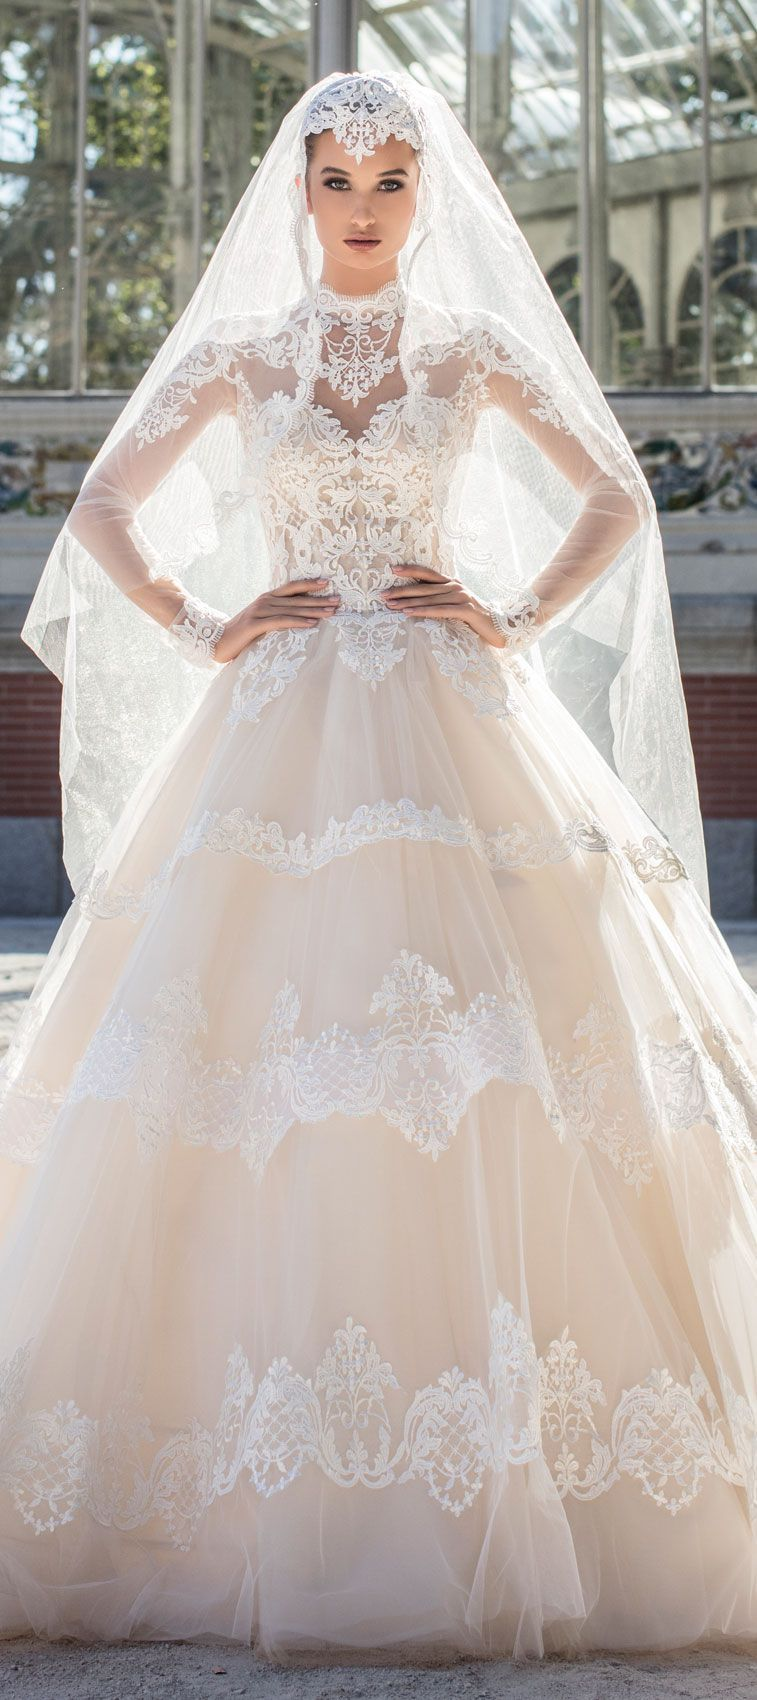 Victoria soprano wedding dresses ucthe oneud bridal collection